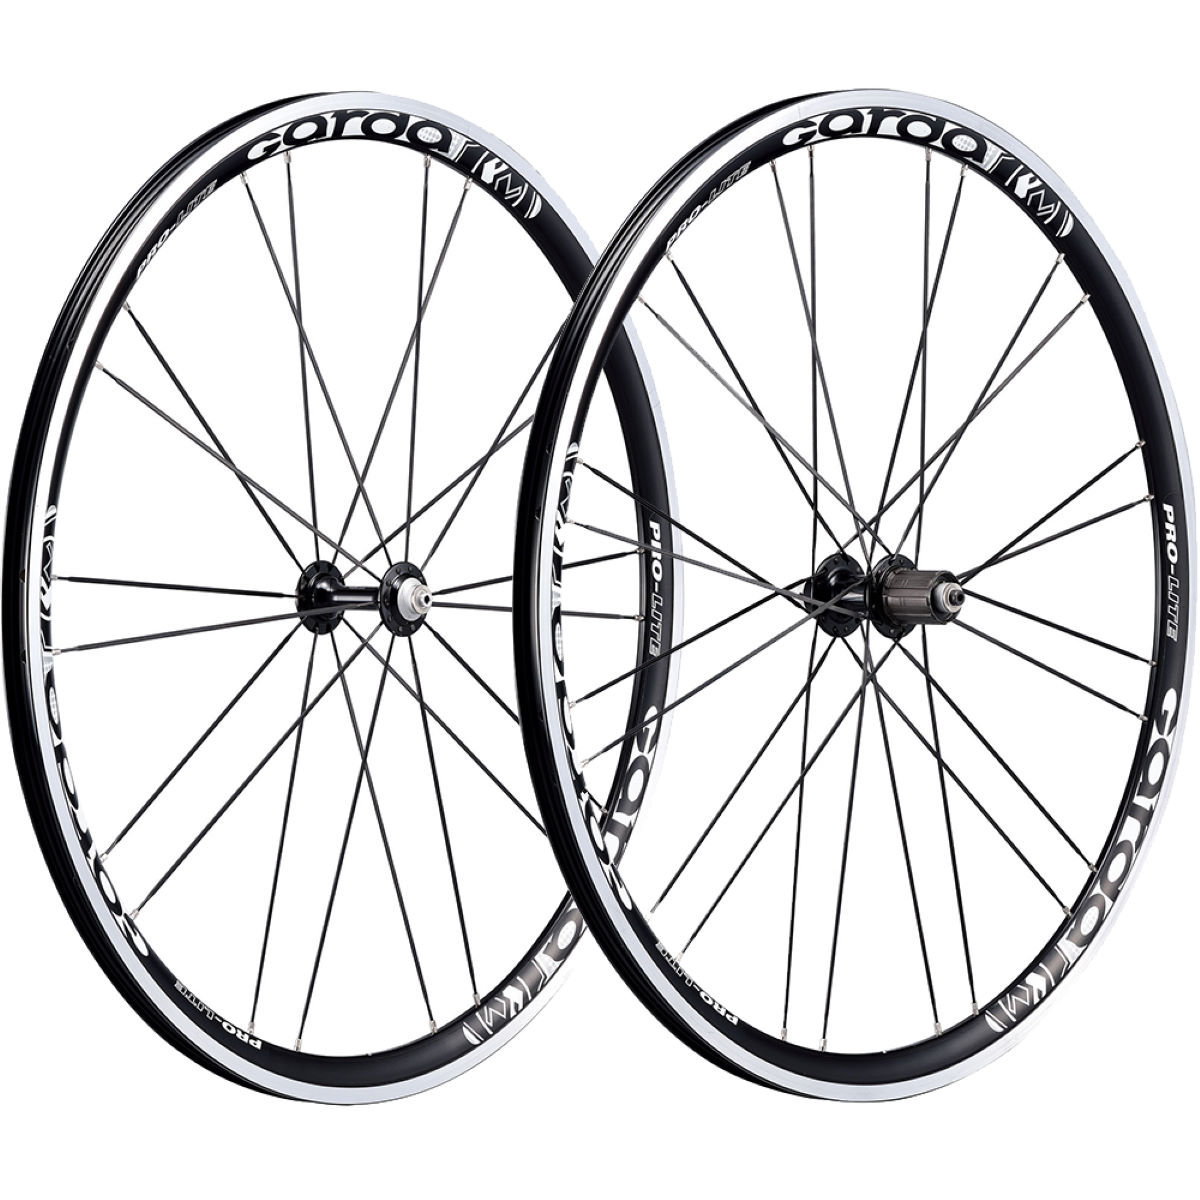 Pro Lite Garda Wider Rim Wheelsets For Everyday Use